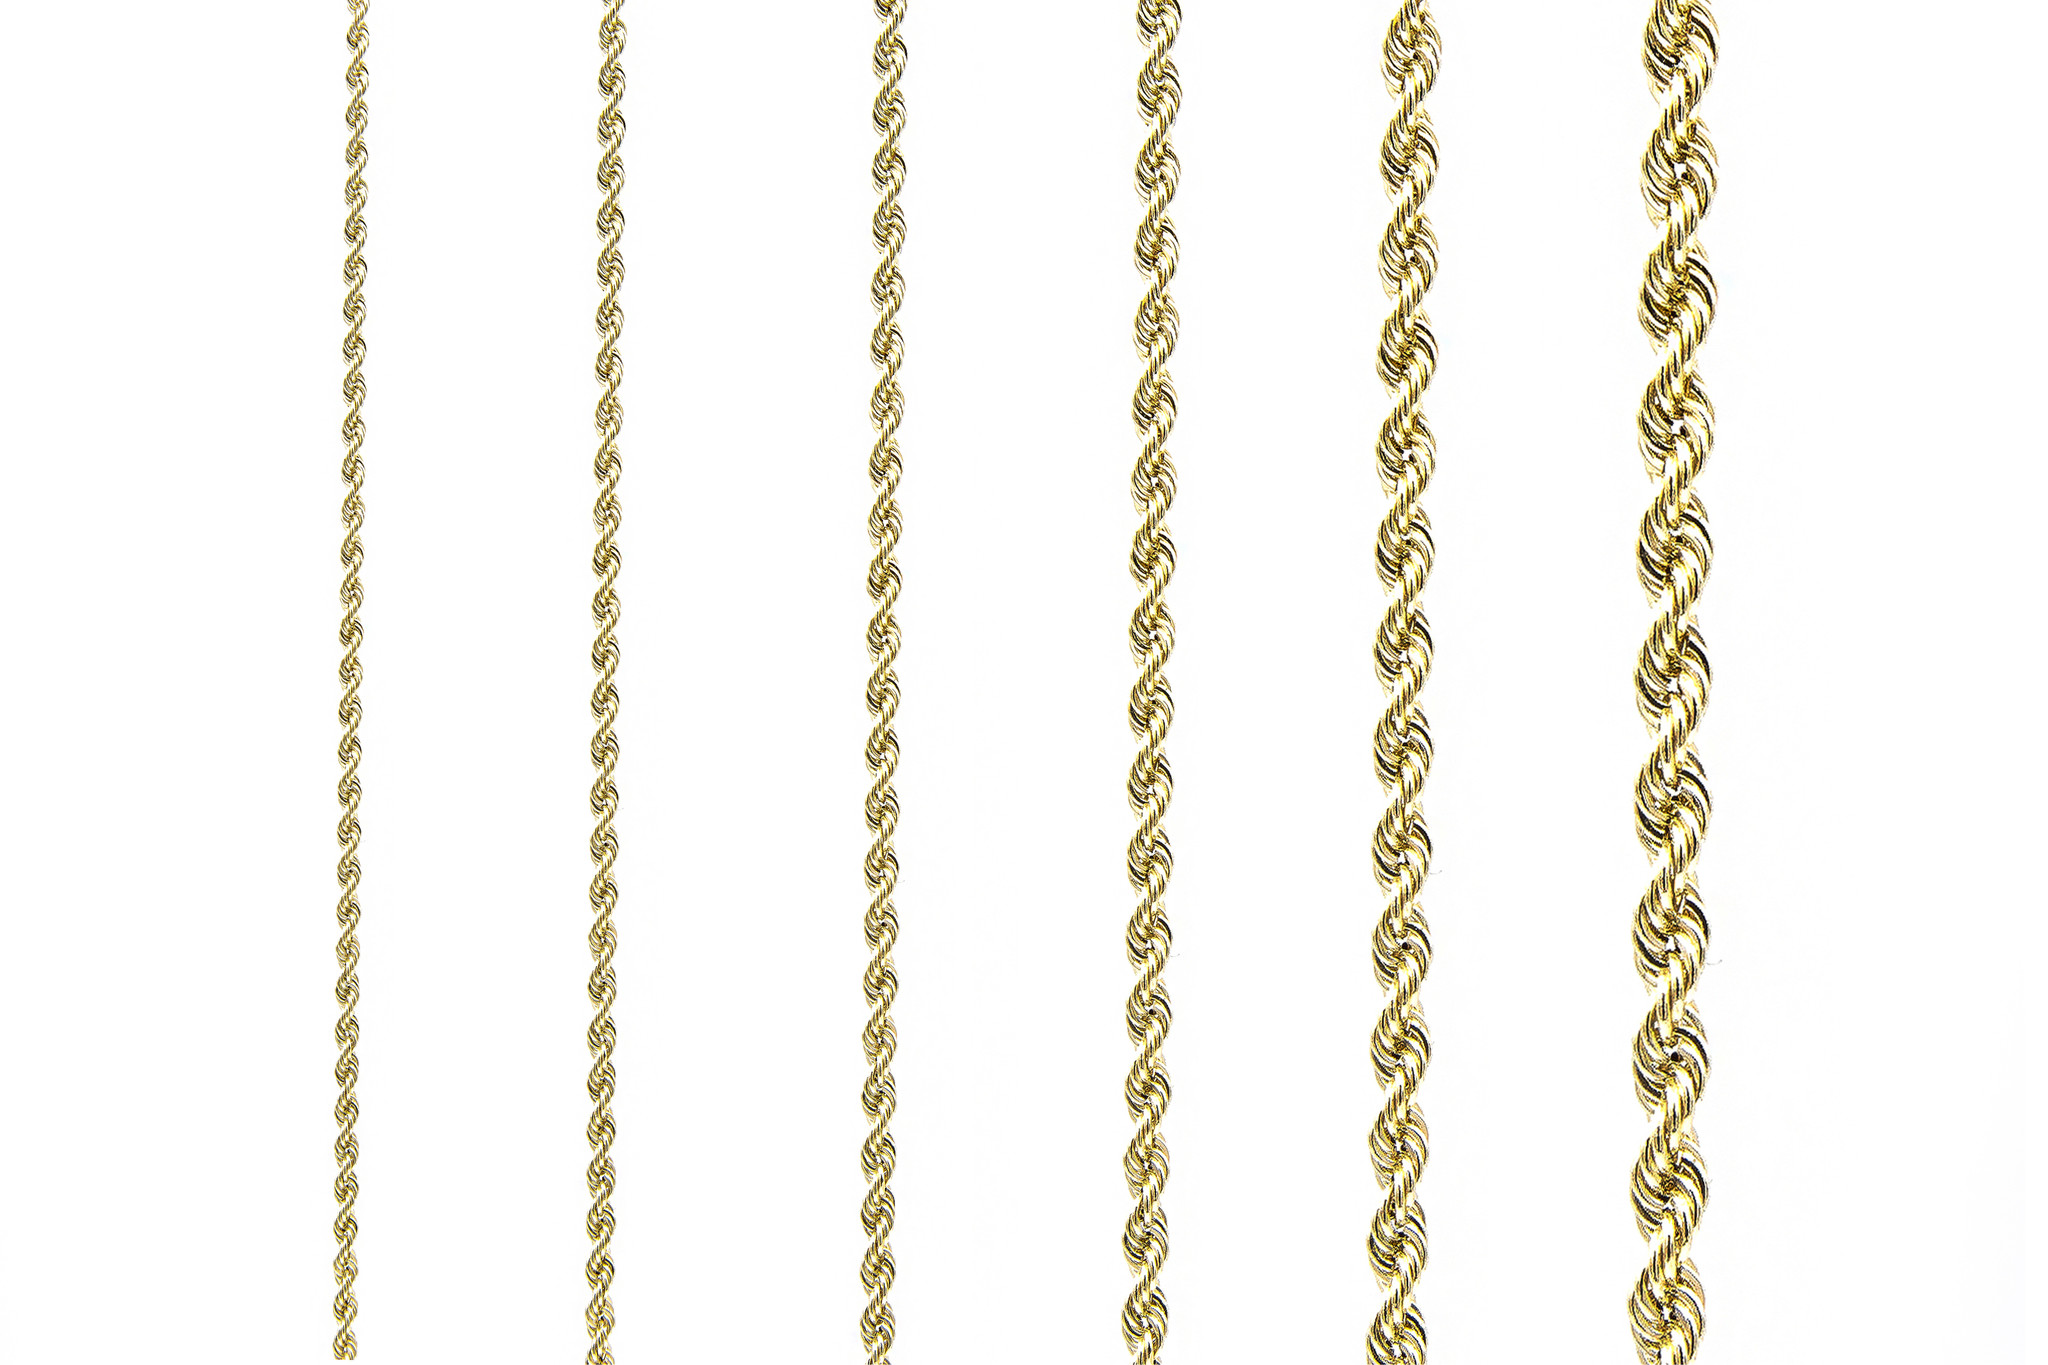 Rope Chain 14k-5 mm-3